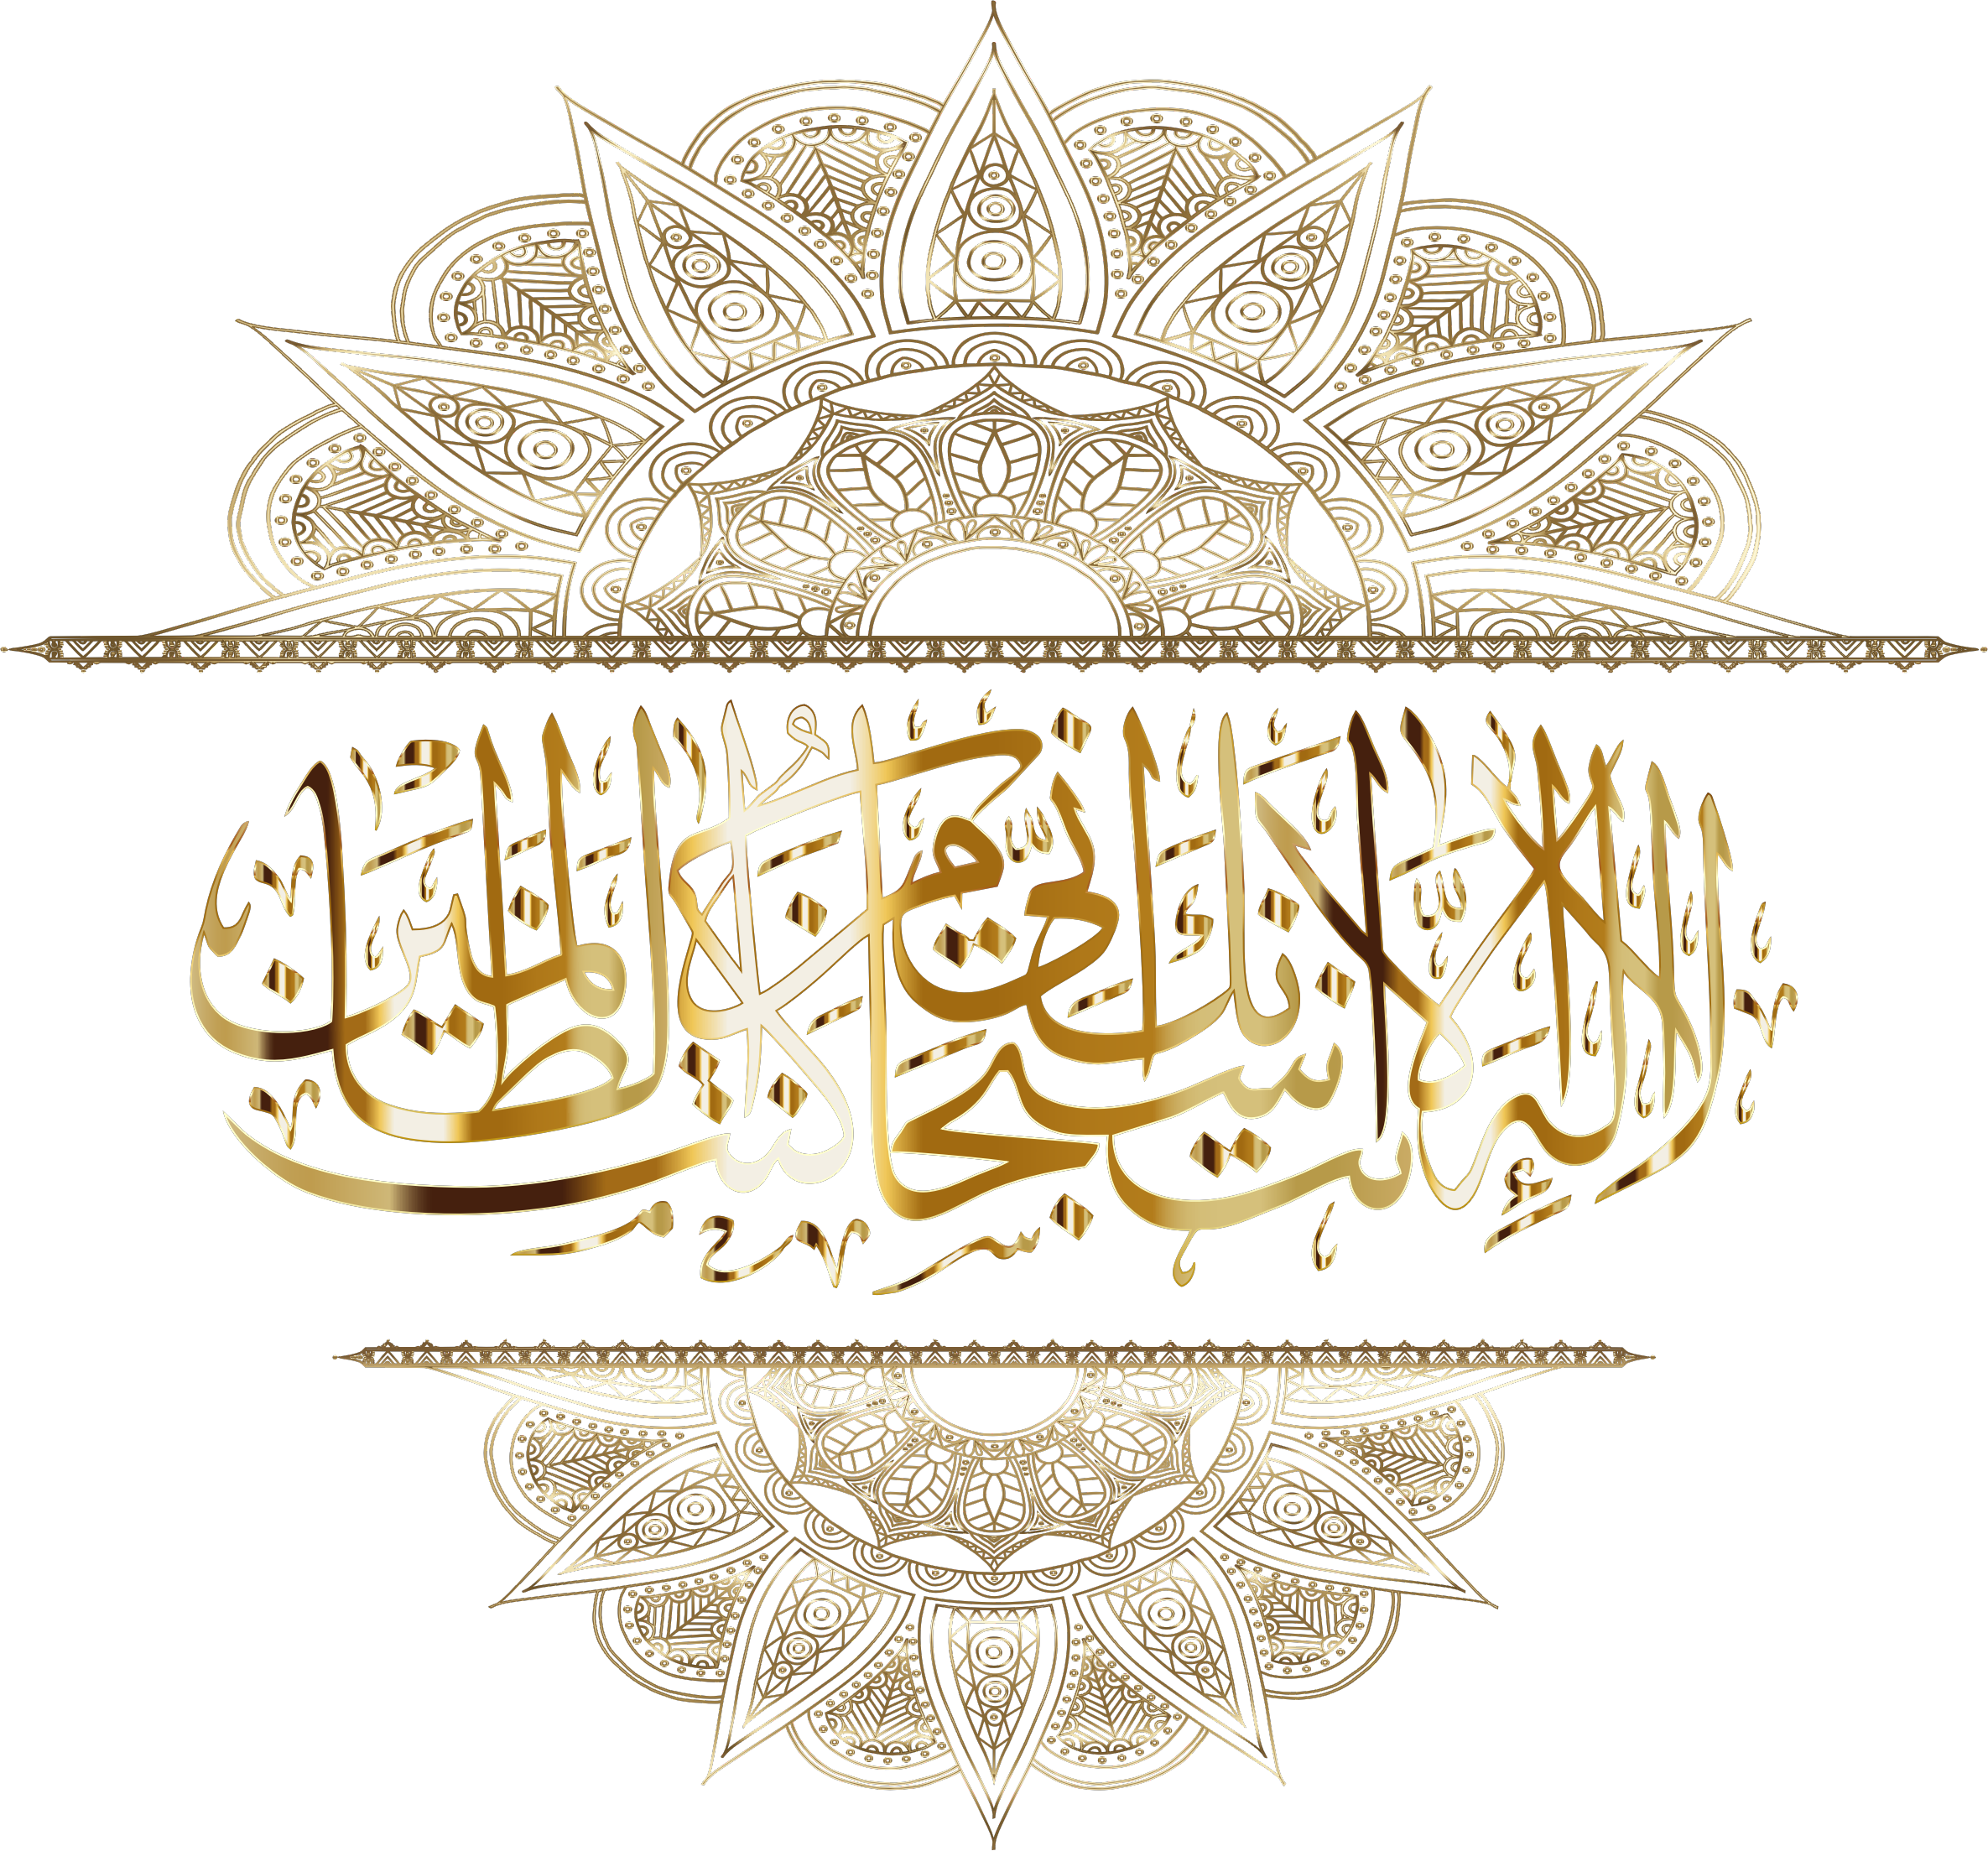 Gold Ornate Islamic Calligraphy No Background by GDJ